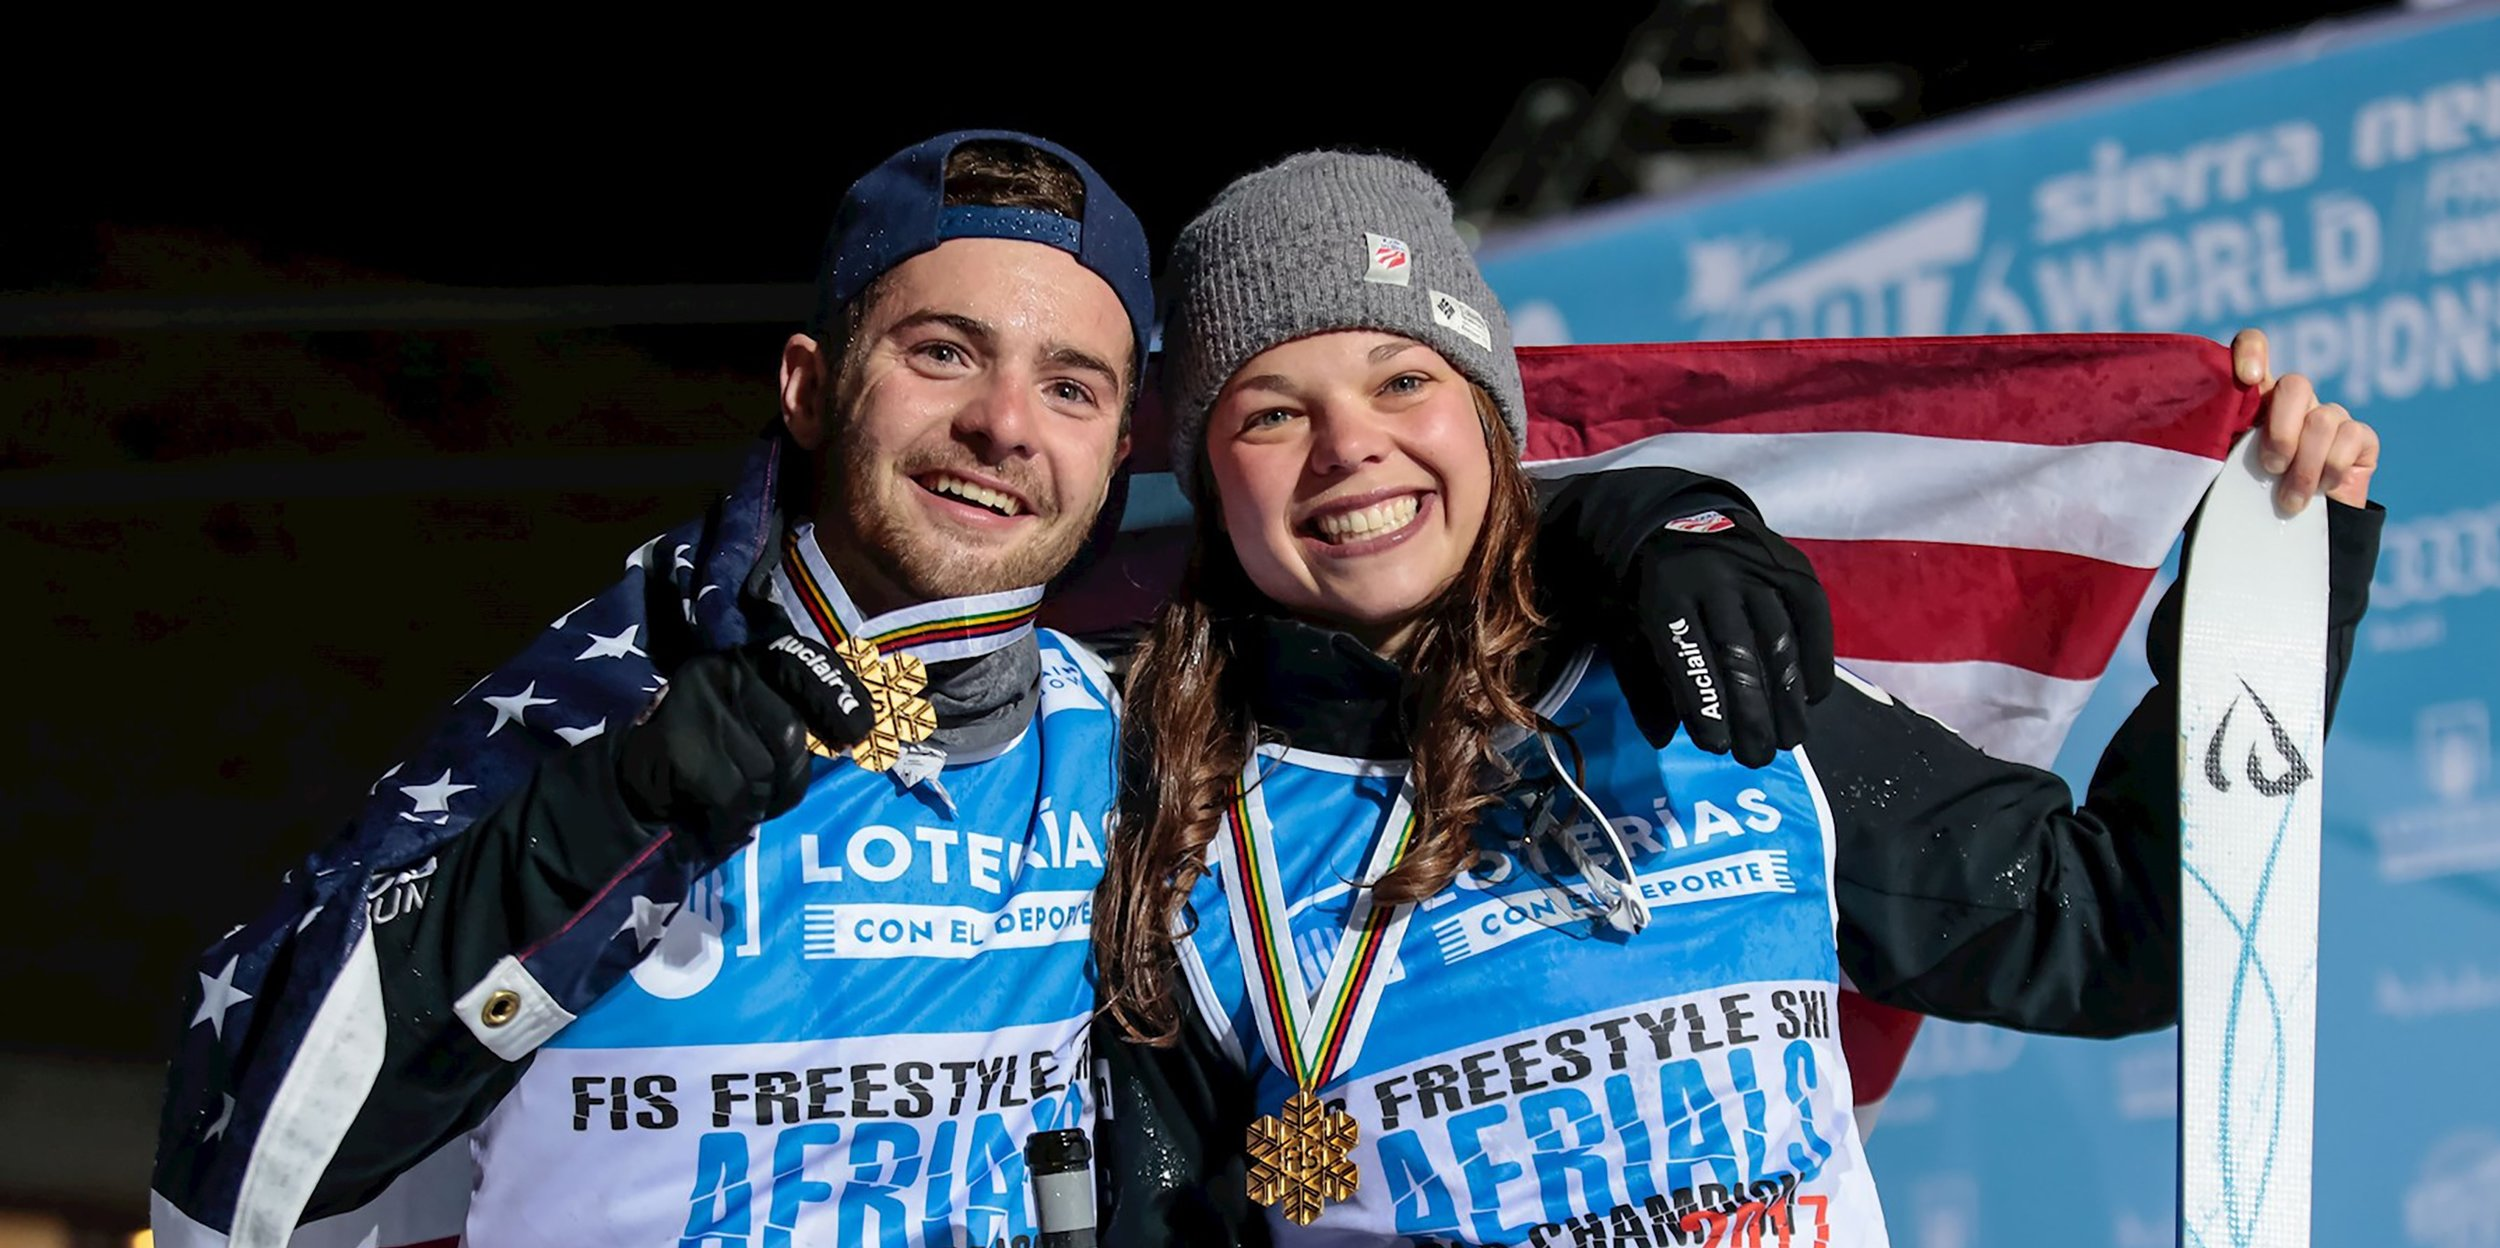 Jonathon Lillis and Ashley Caldwell proudly swept gold in aerials at Freestyle World Championships in Sierra Nevada, Spain. (Sierra Nevada - Pepe Marin)